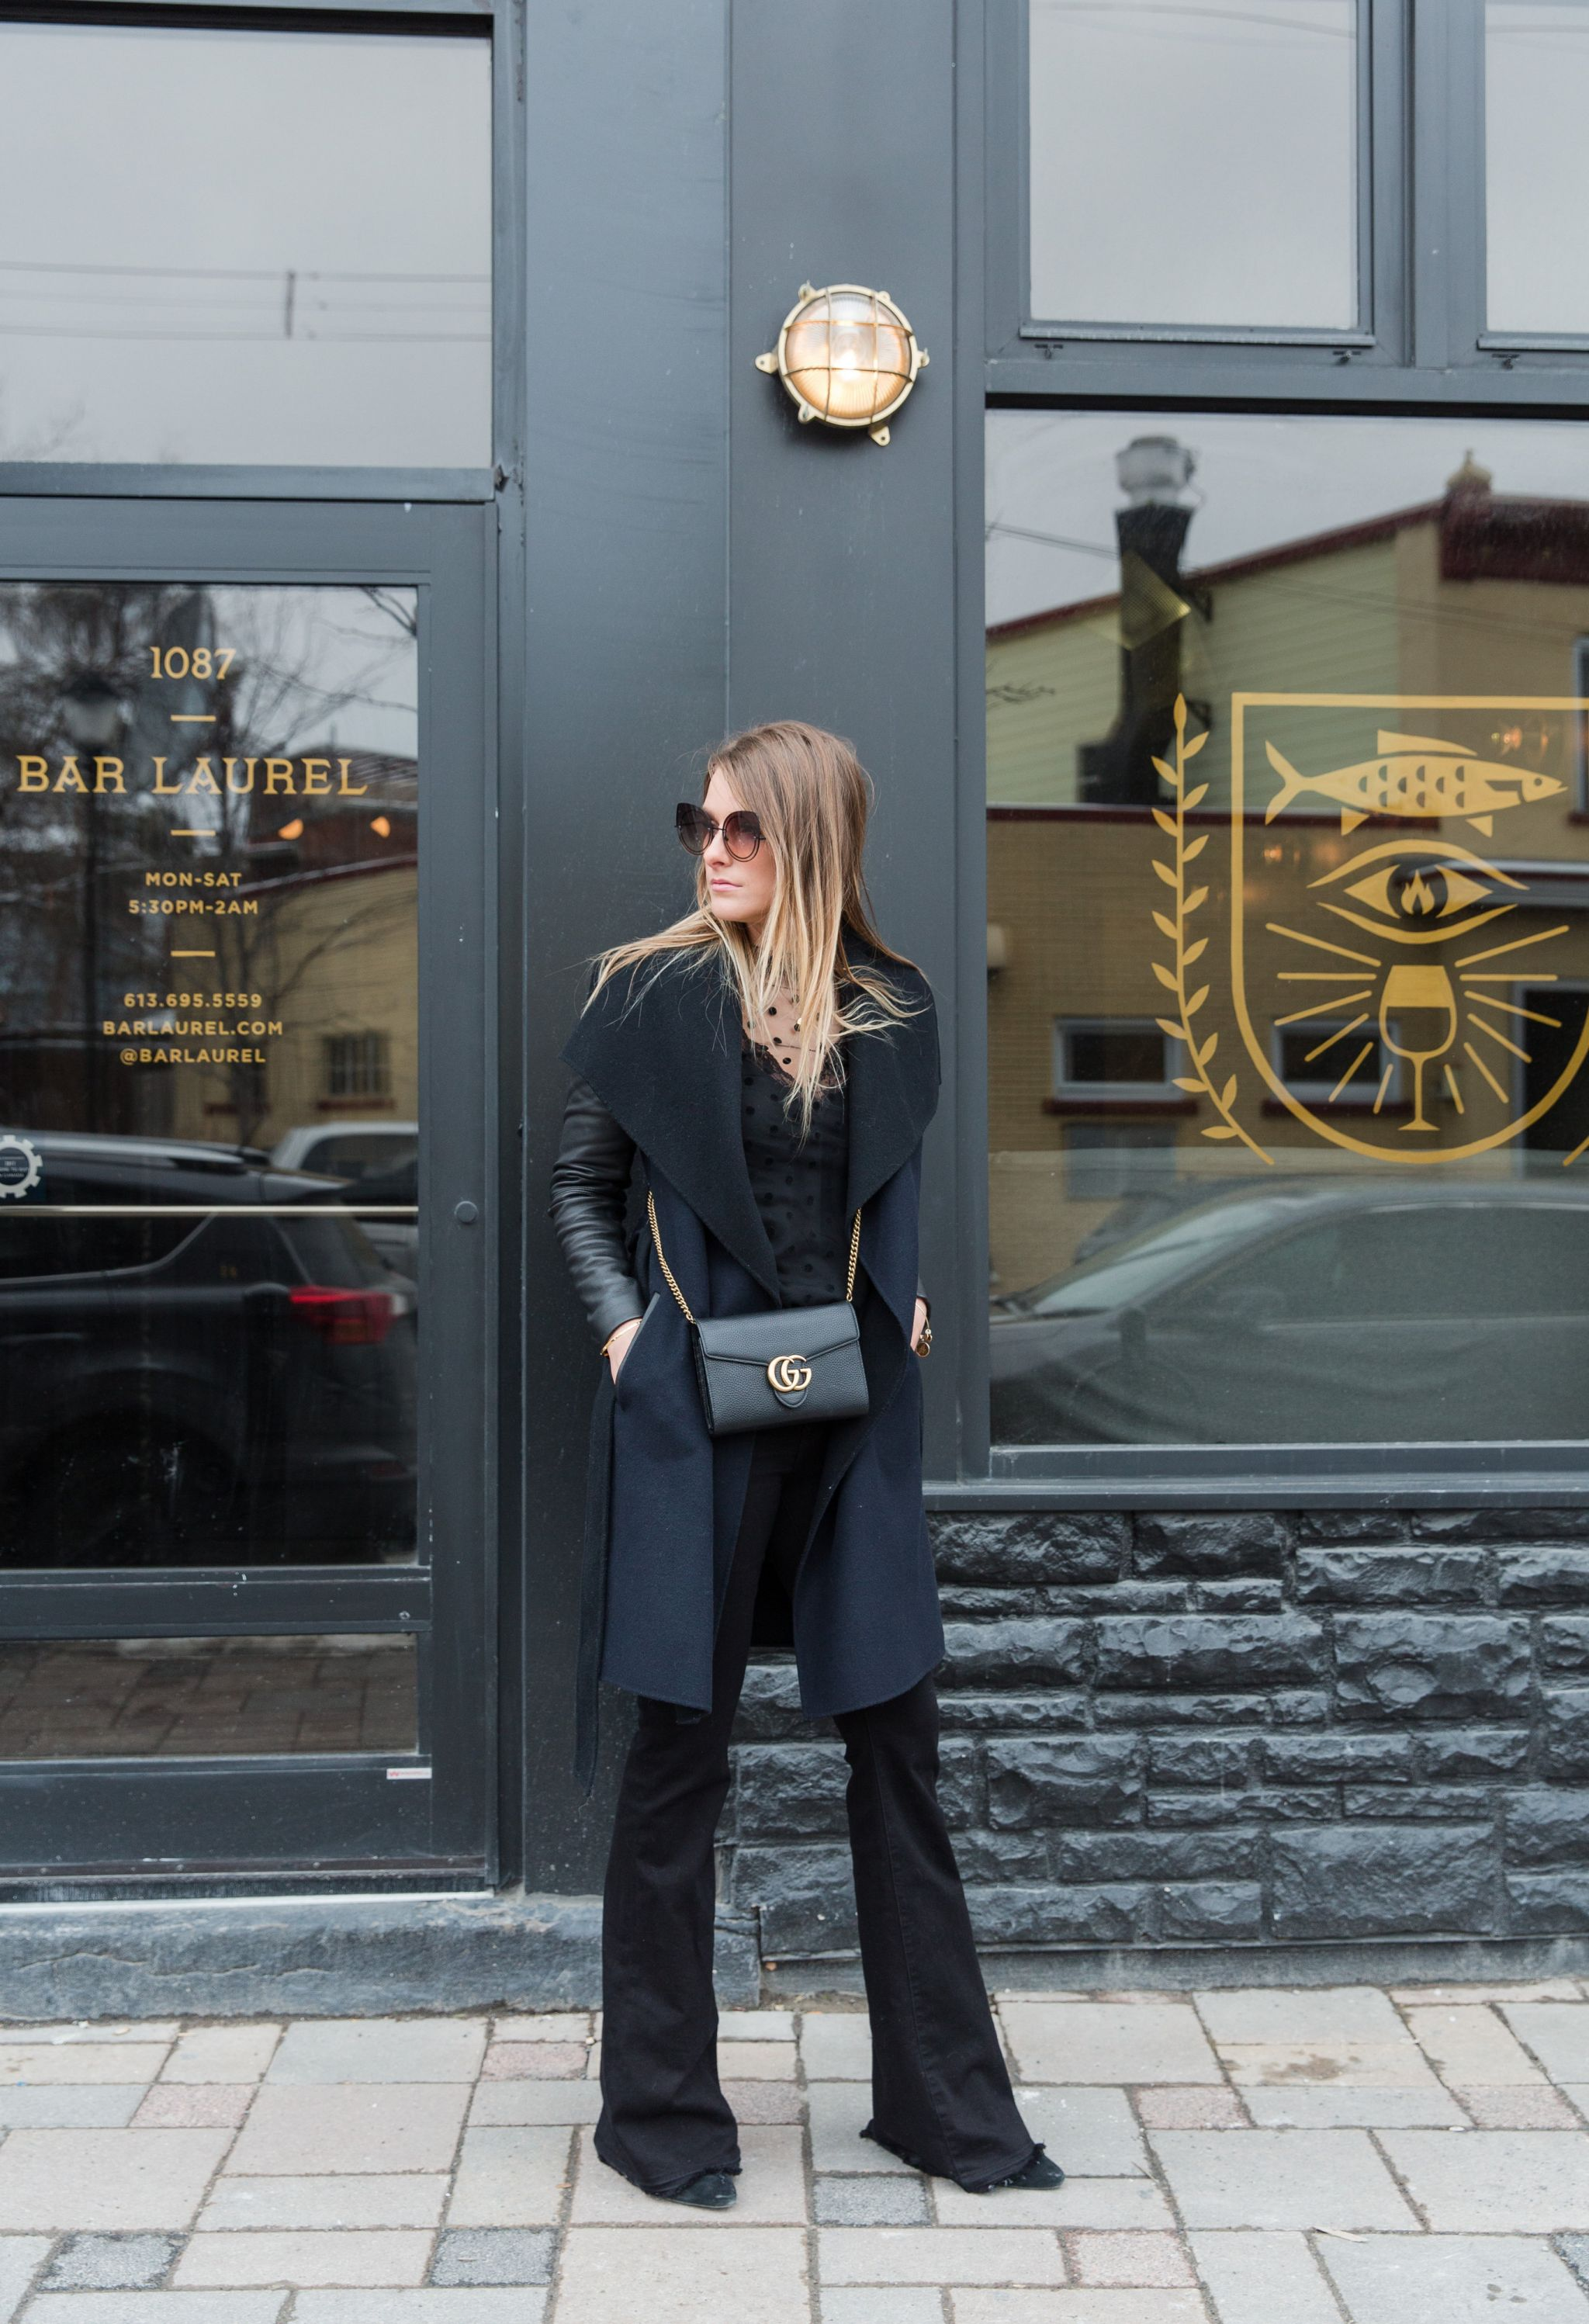 ottawa bar laurel, life with aco, Ottawa fashion blogger